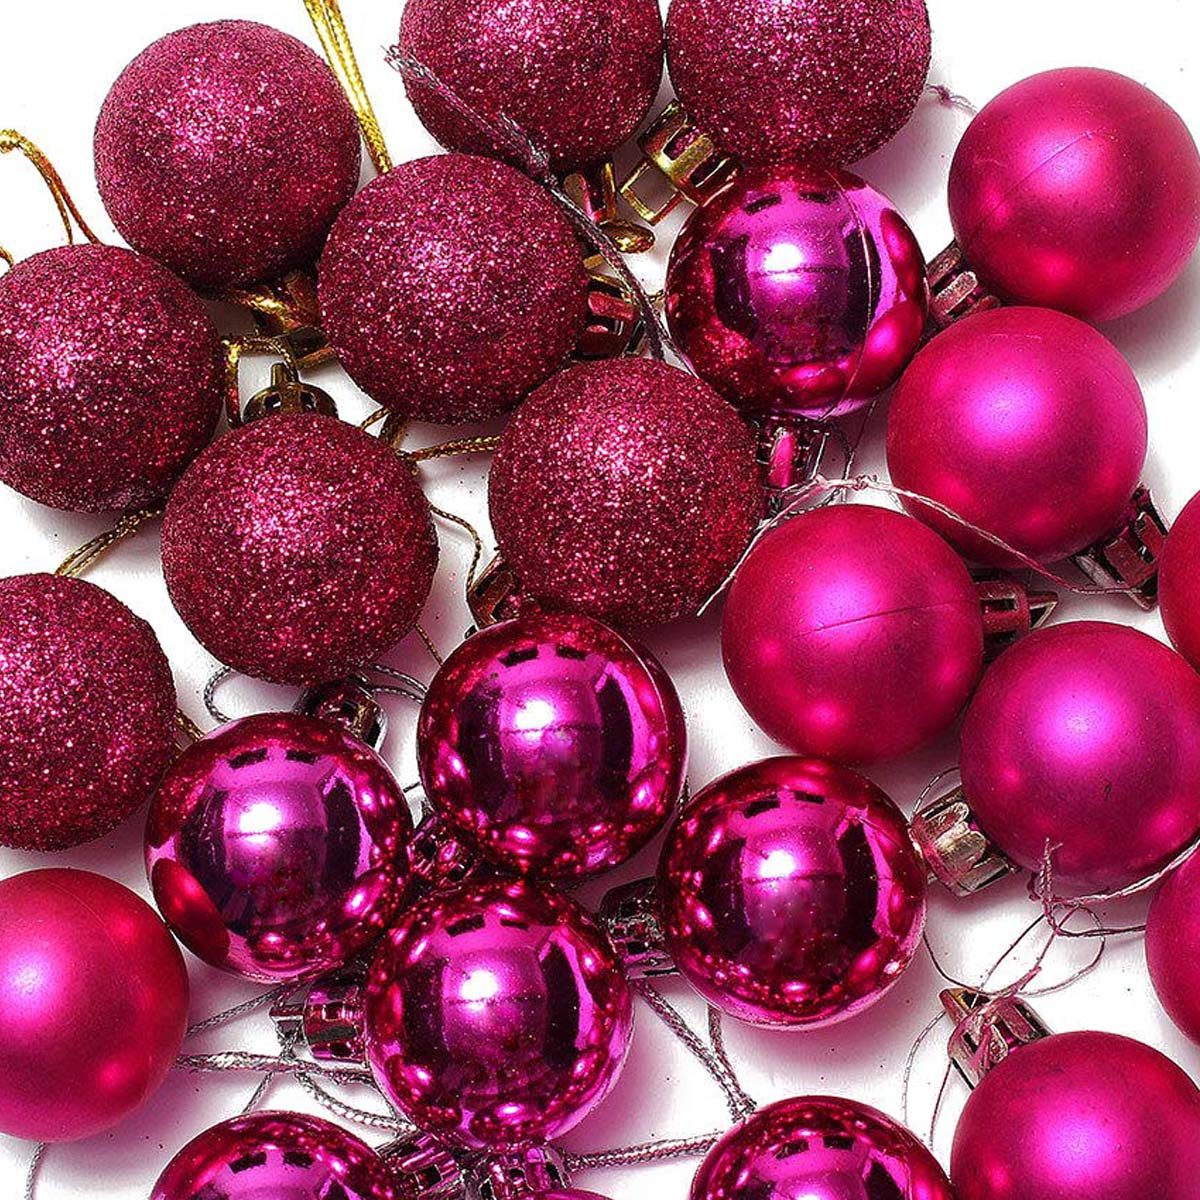 Rose christmas ornament - Jfbl Hot New 24pc Christmas Tree Decor Ball Bauble Hanging Xmas Party Ornament Decor Home Rose Red